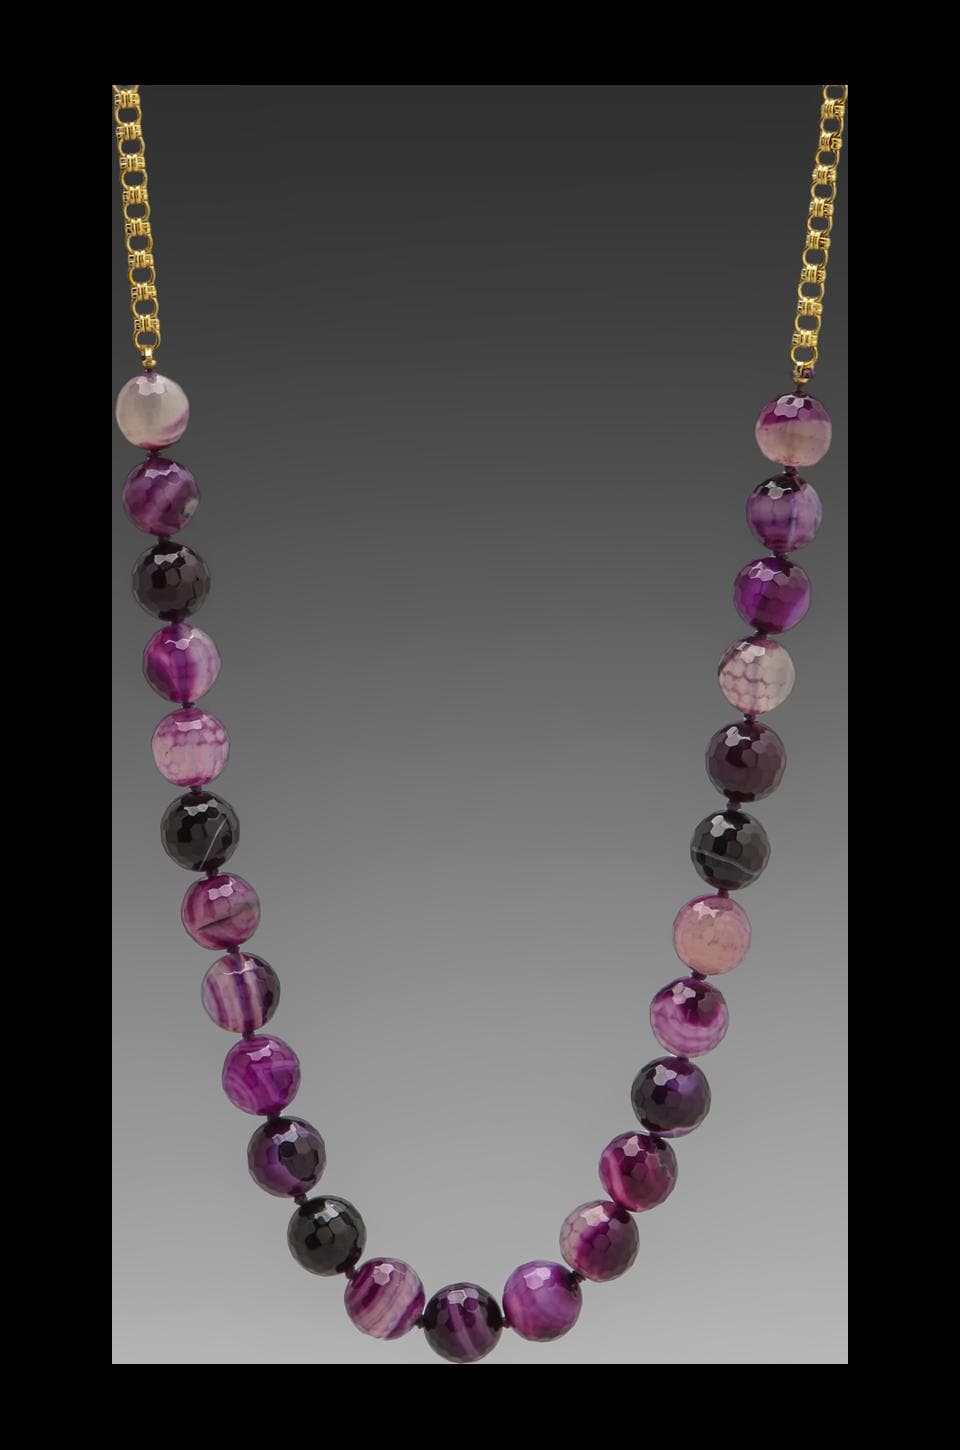 Kenneth Jay Lane 36' Gold Chain Agate Necklace in Multi Purple